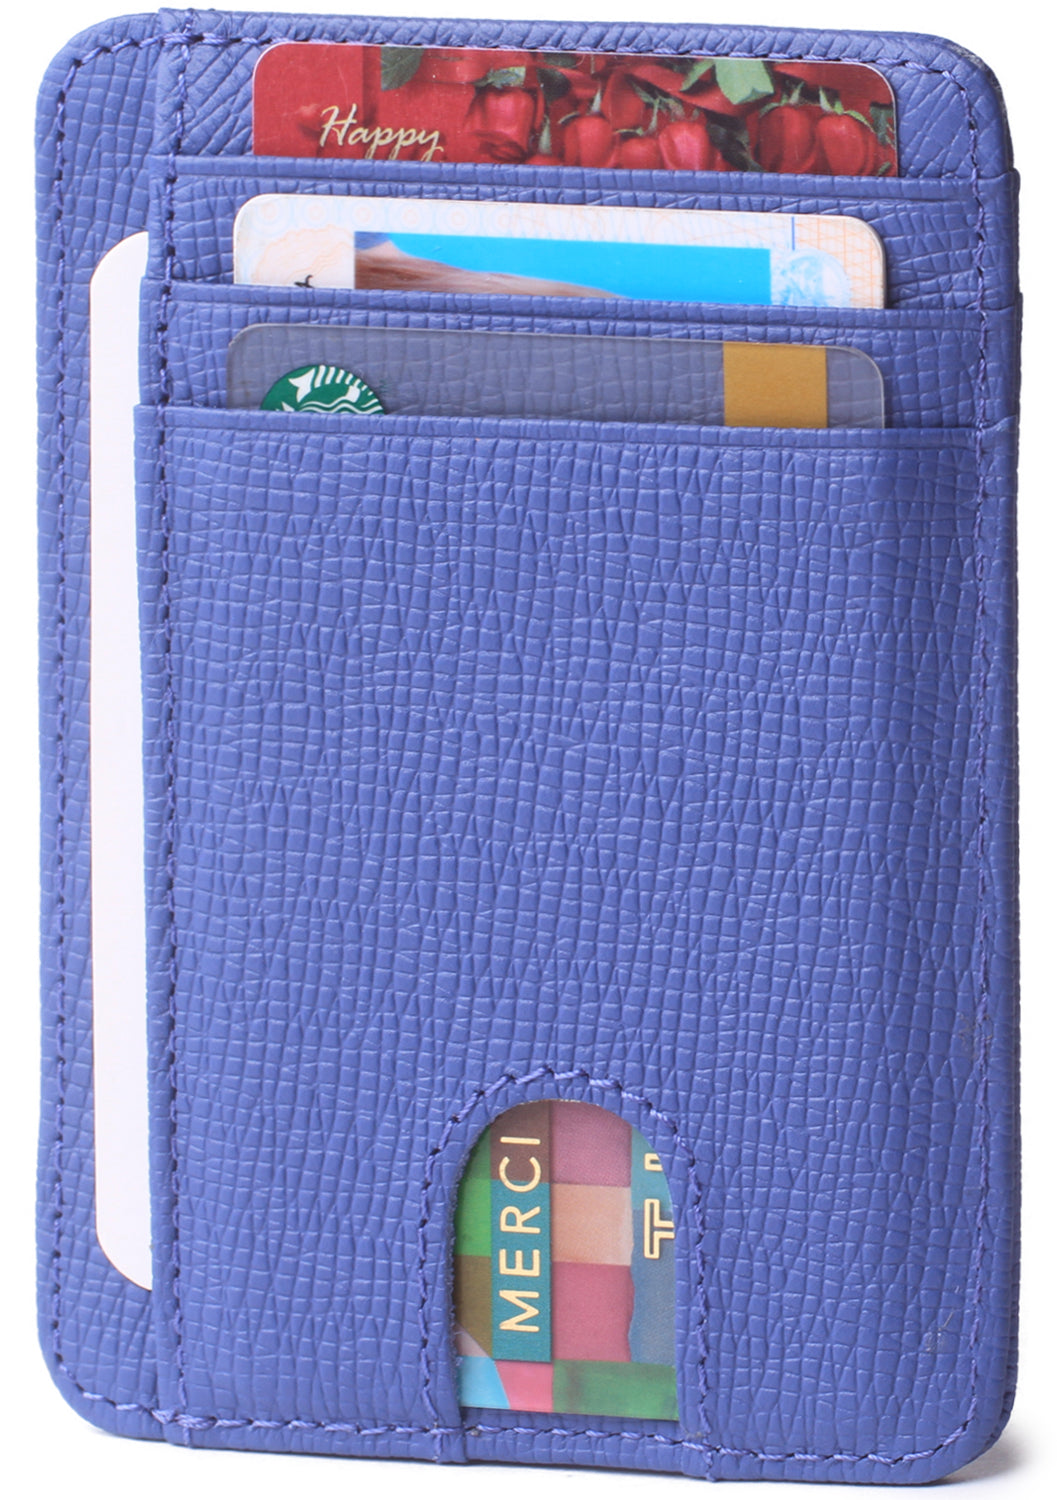 Slim Minimalist Front Pocket RFID Blocking Leather Wallets for Men & Women BG2288 Cross Light Blue - Borgasets